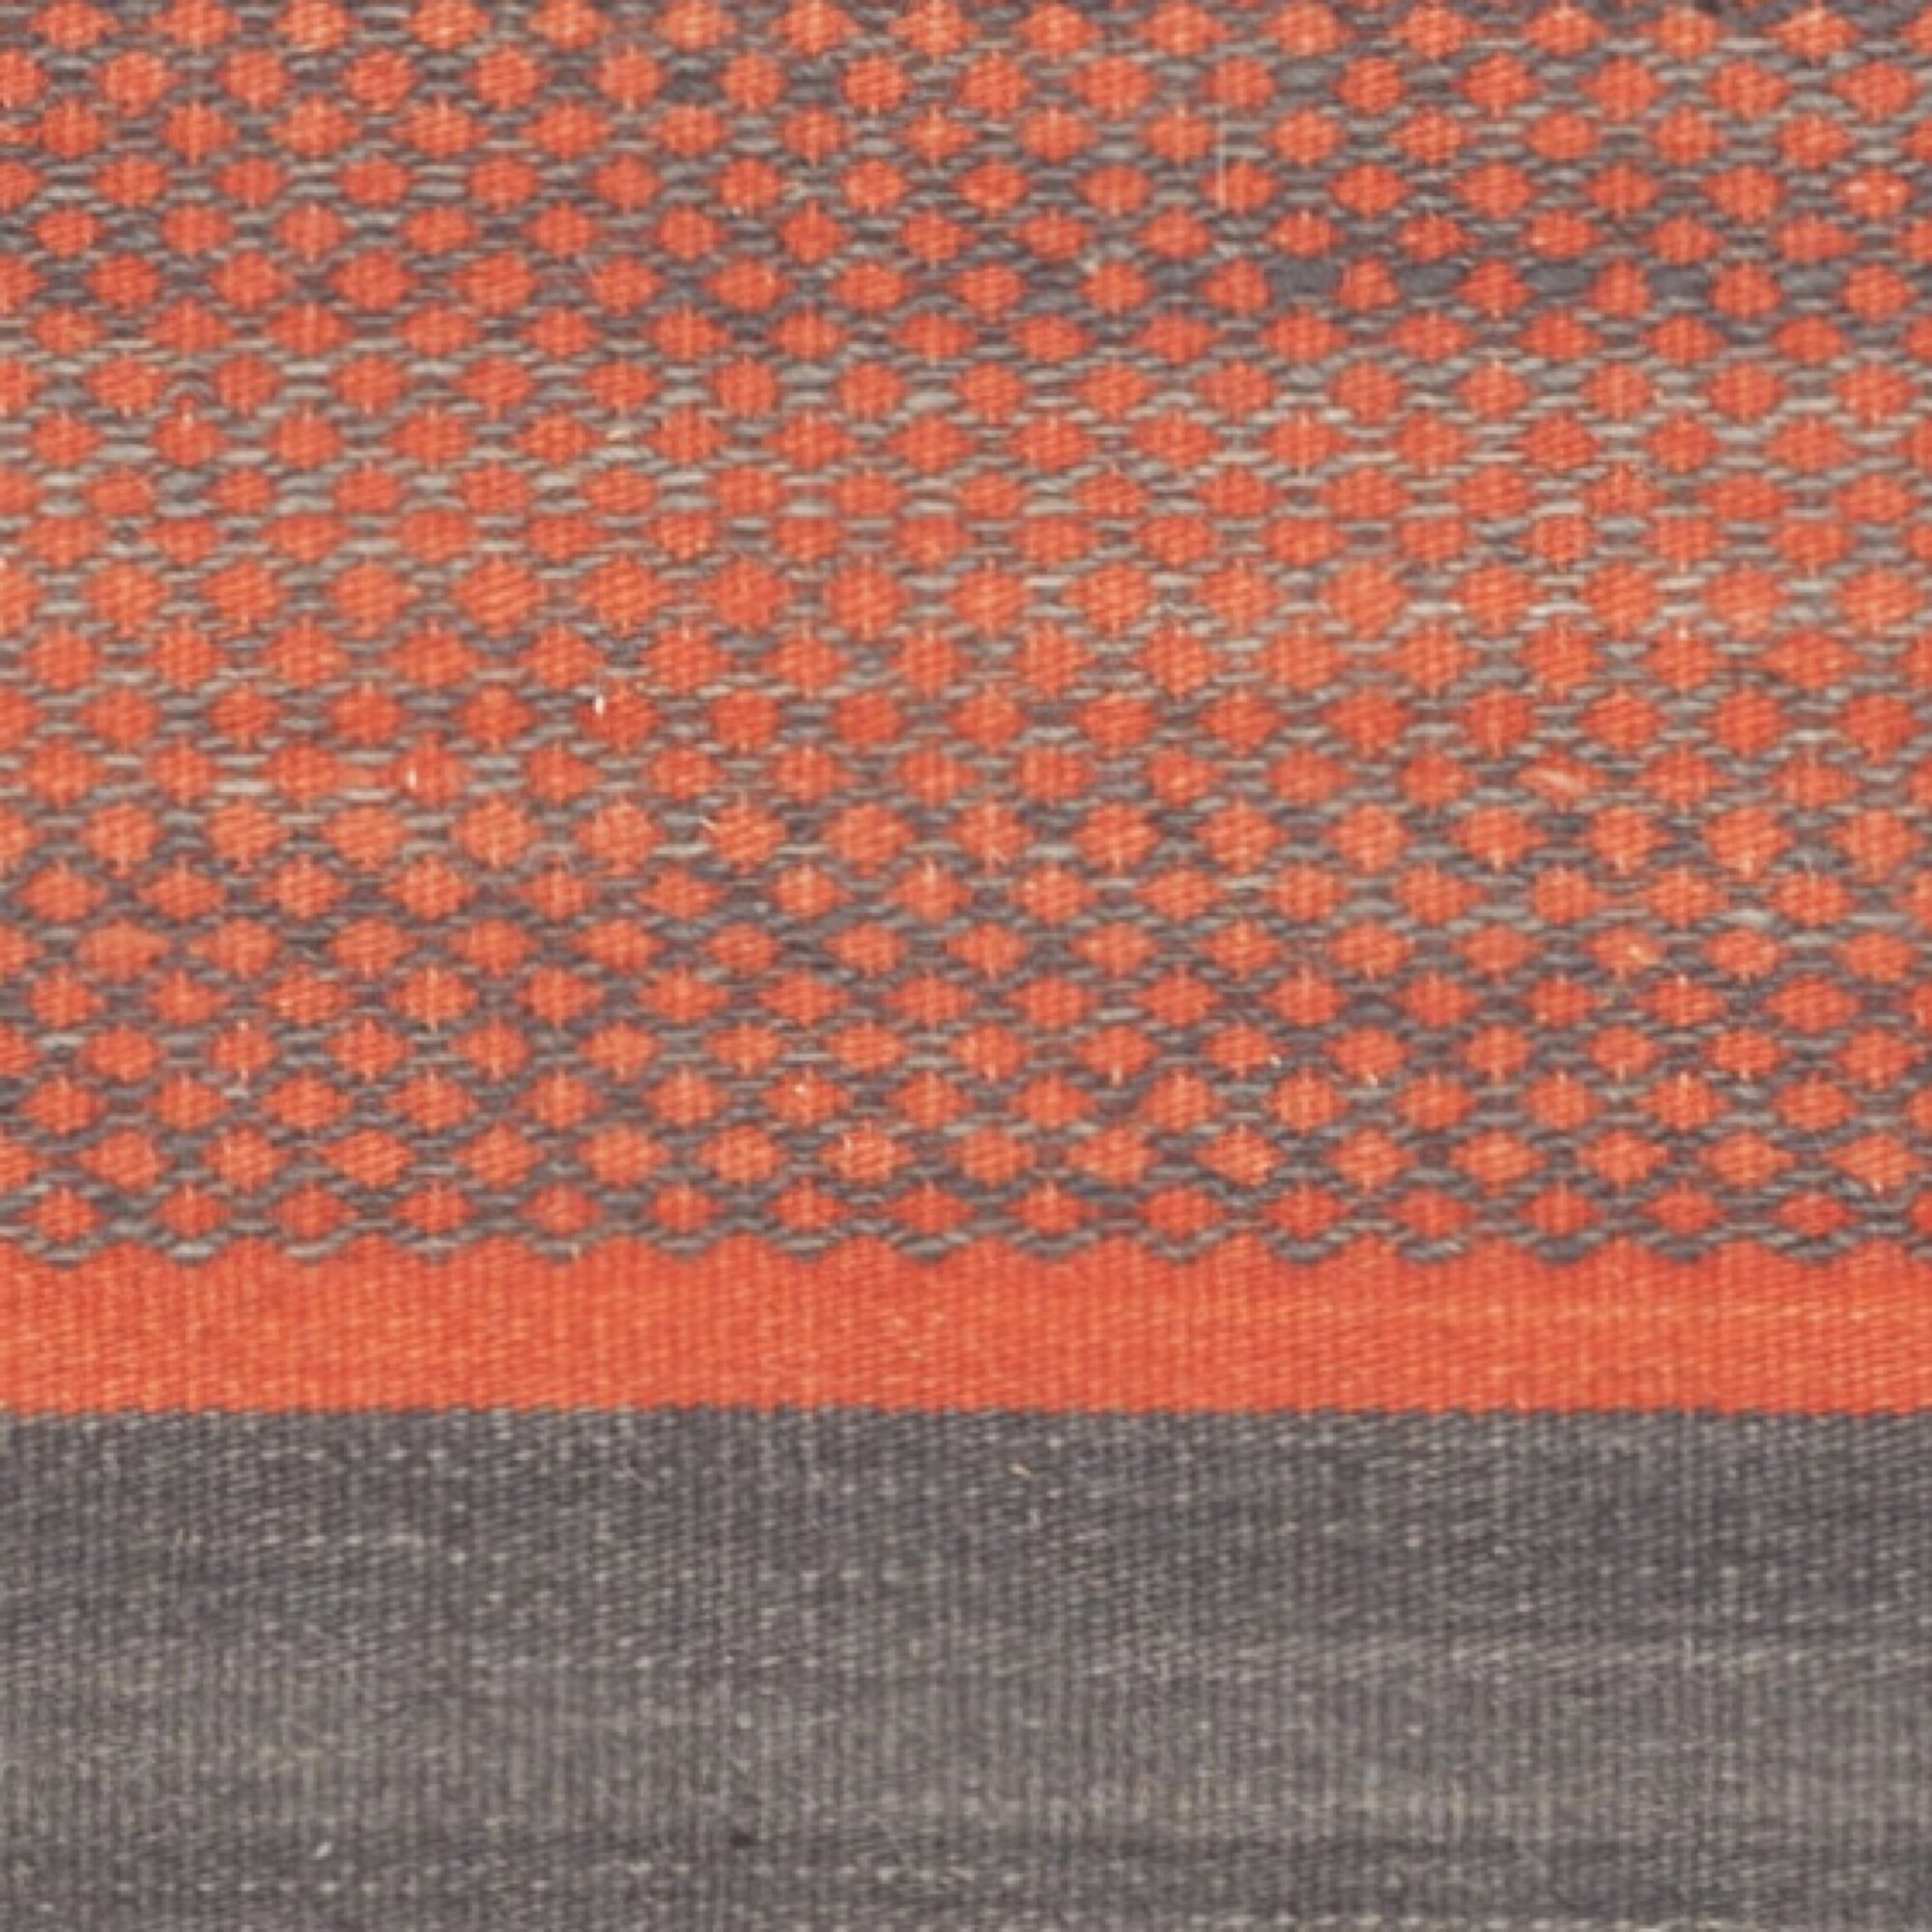 Safavieh Kilim Dark Grey Orange Striped Rug Amp Reviews